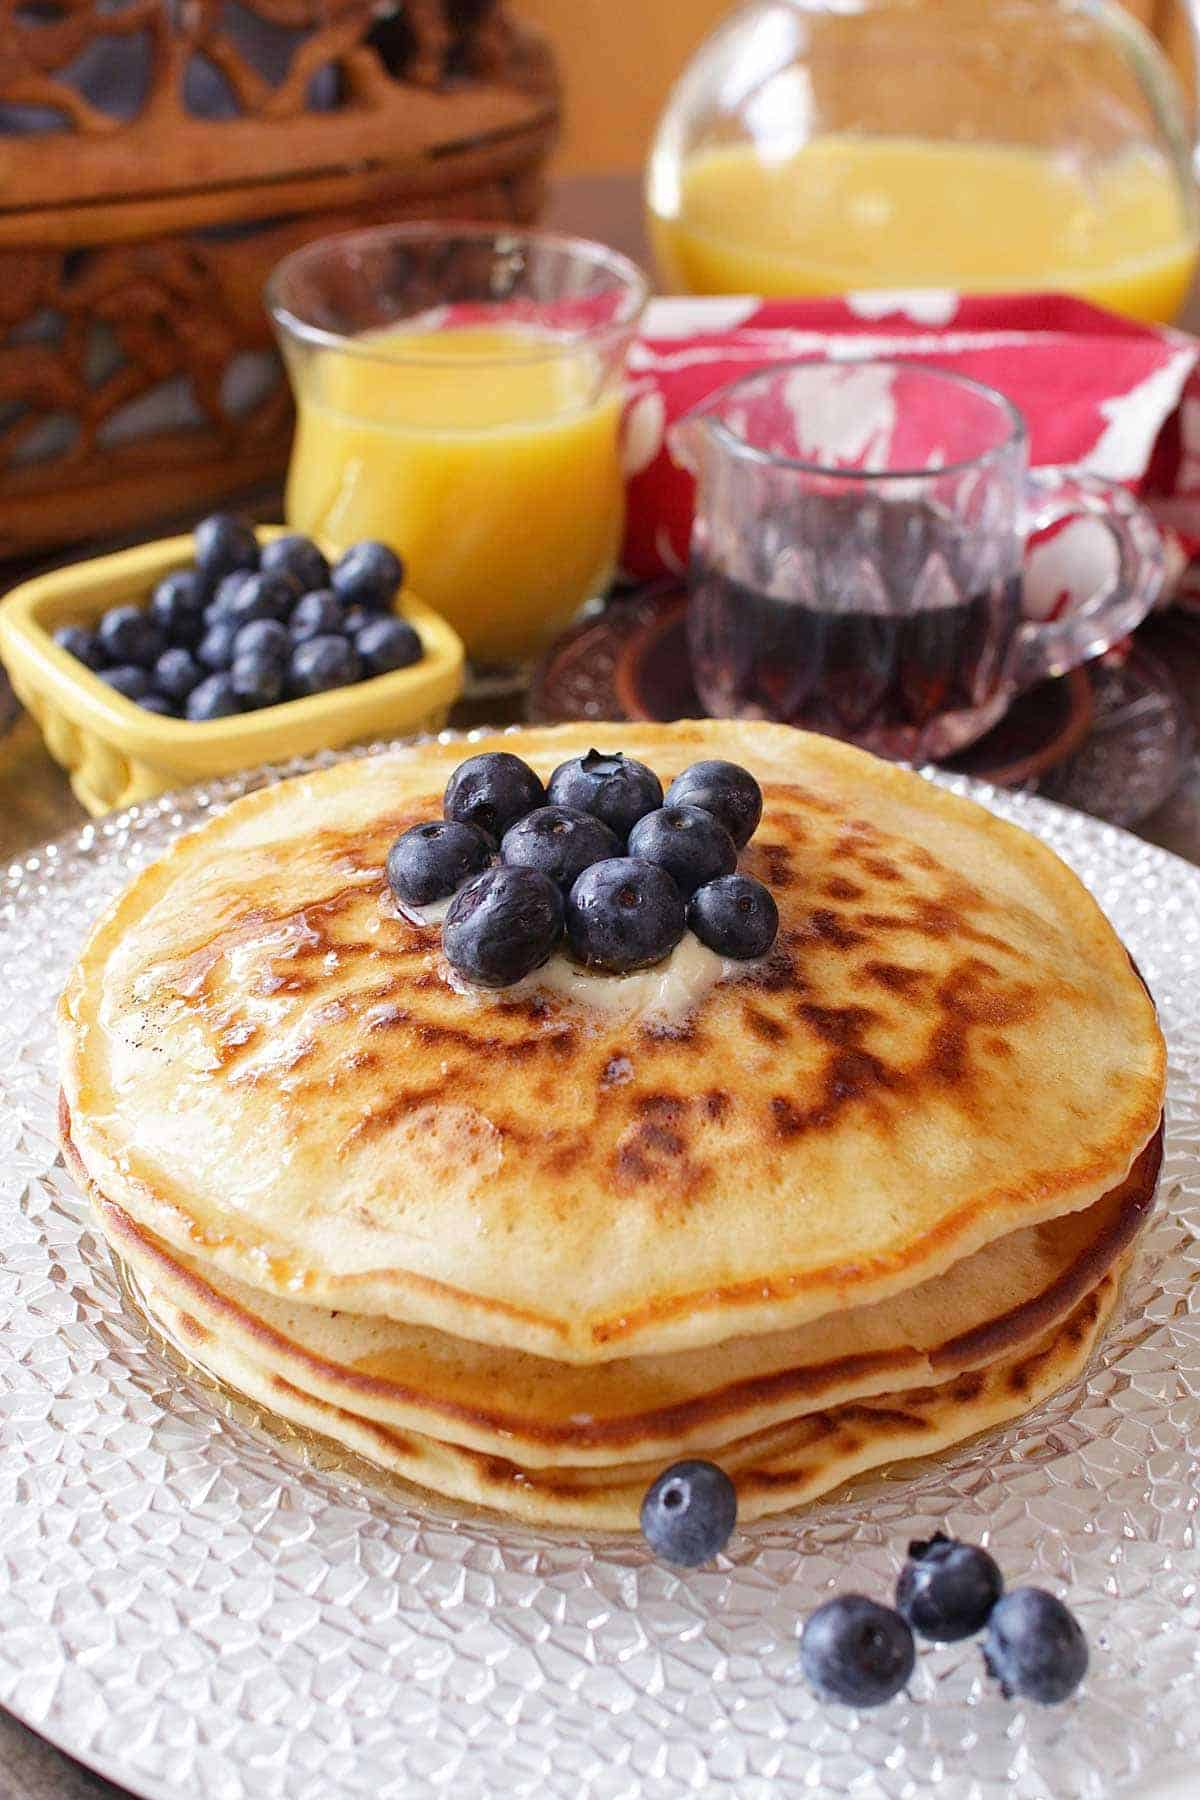 Three pancakes stacked on a plate and topped with melted butter and blueberries next to a small bowl of blueberries, a glass of orange juice, and a small glass container of maple syrup